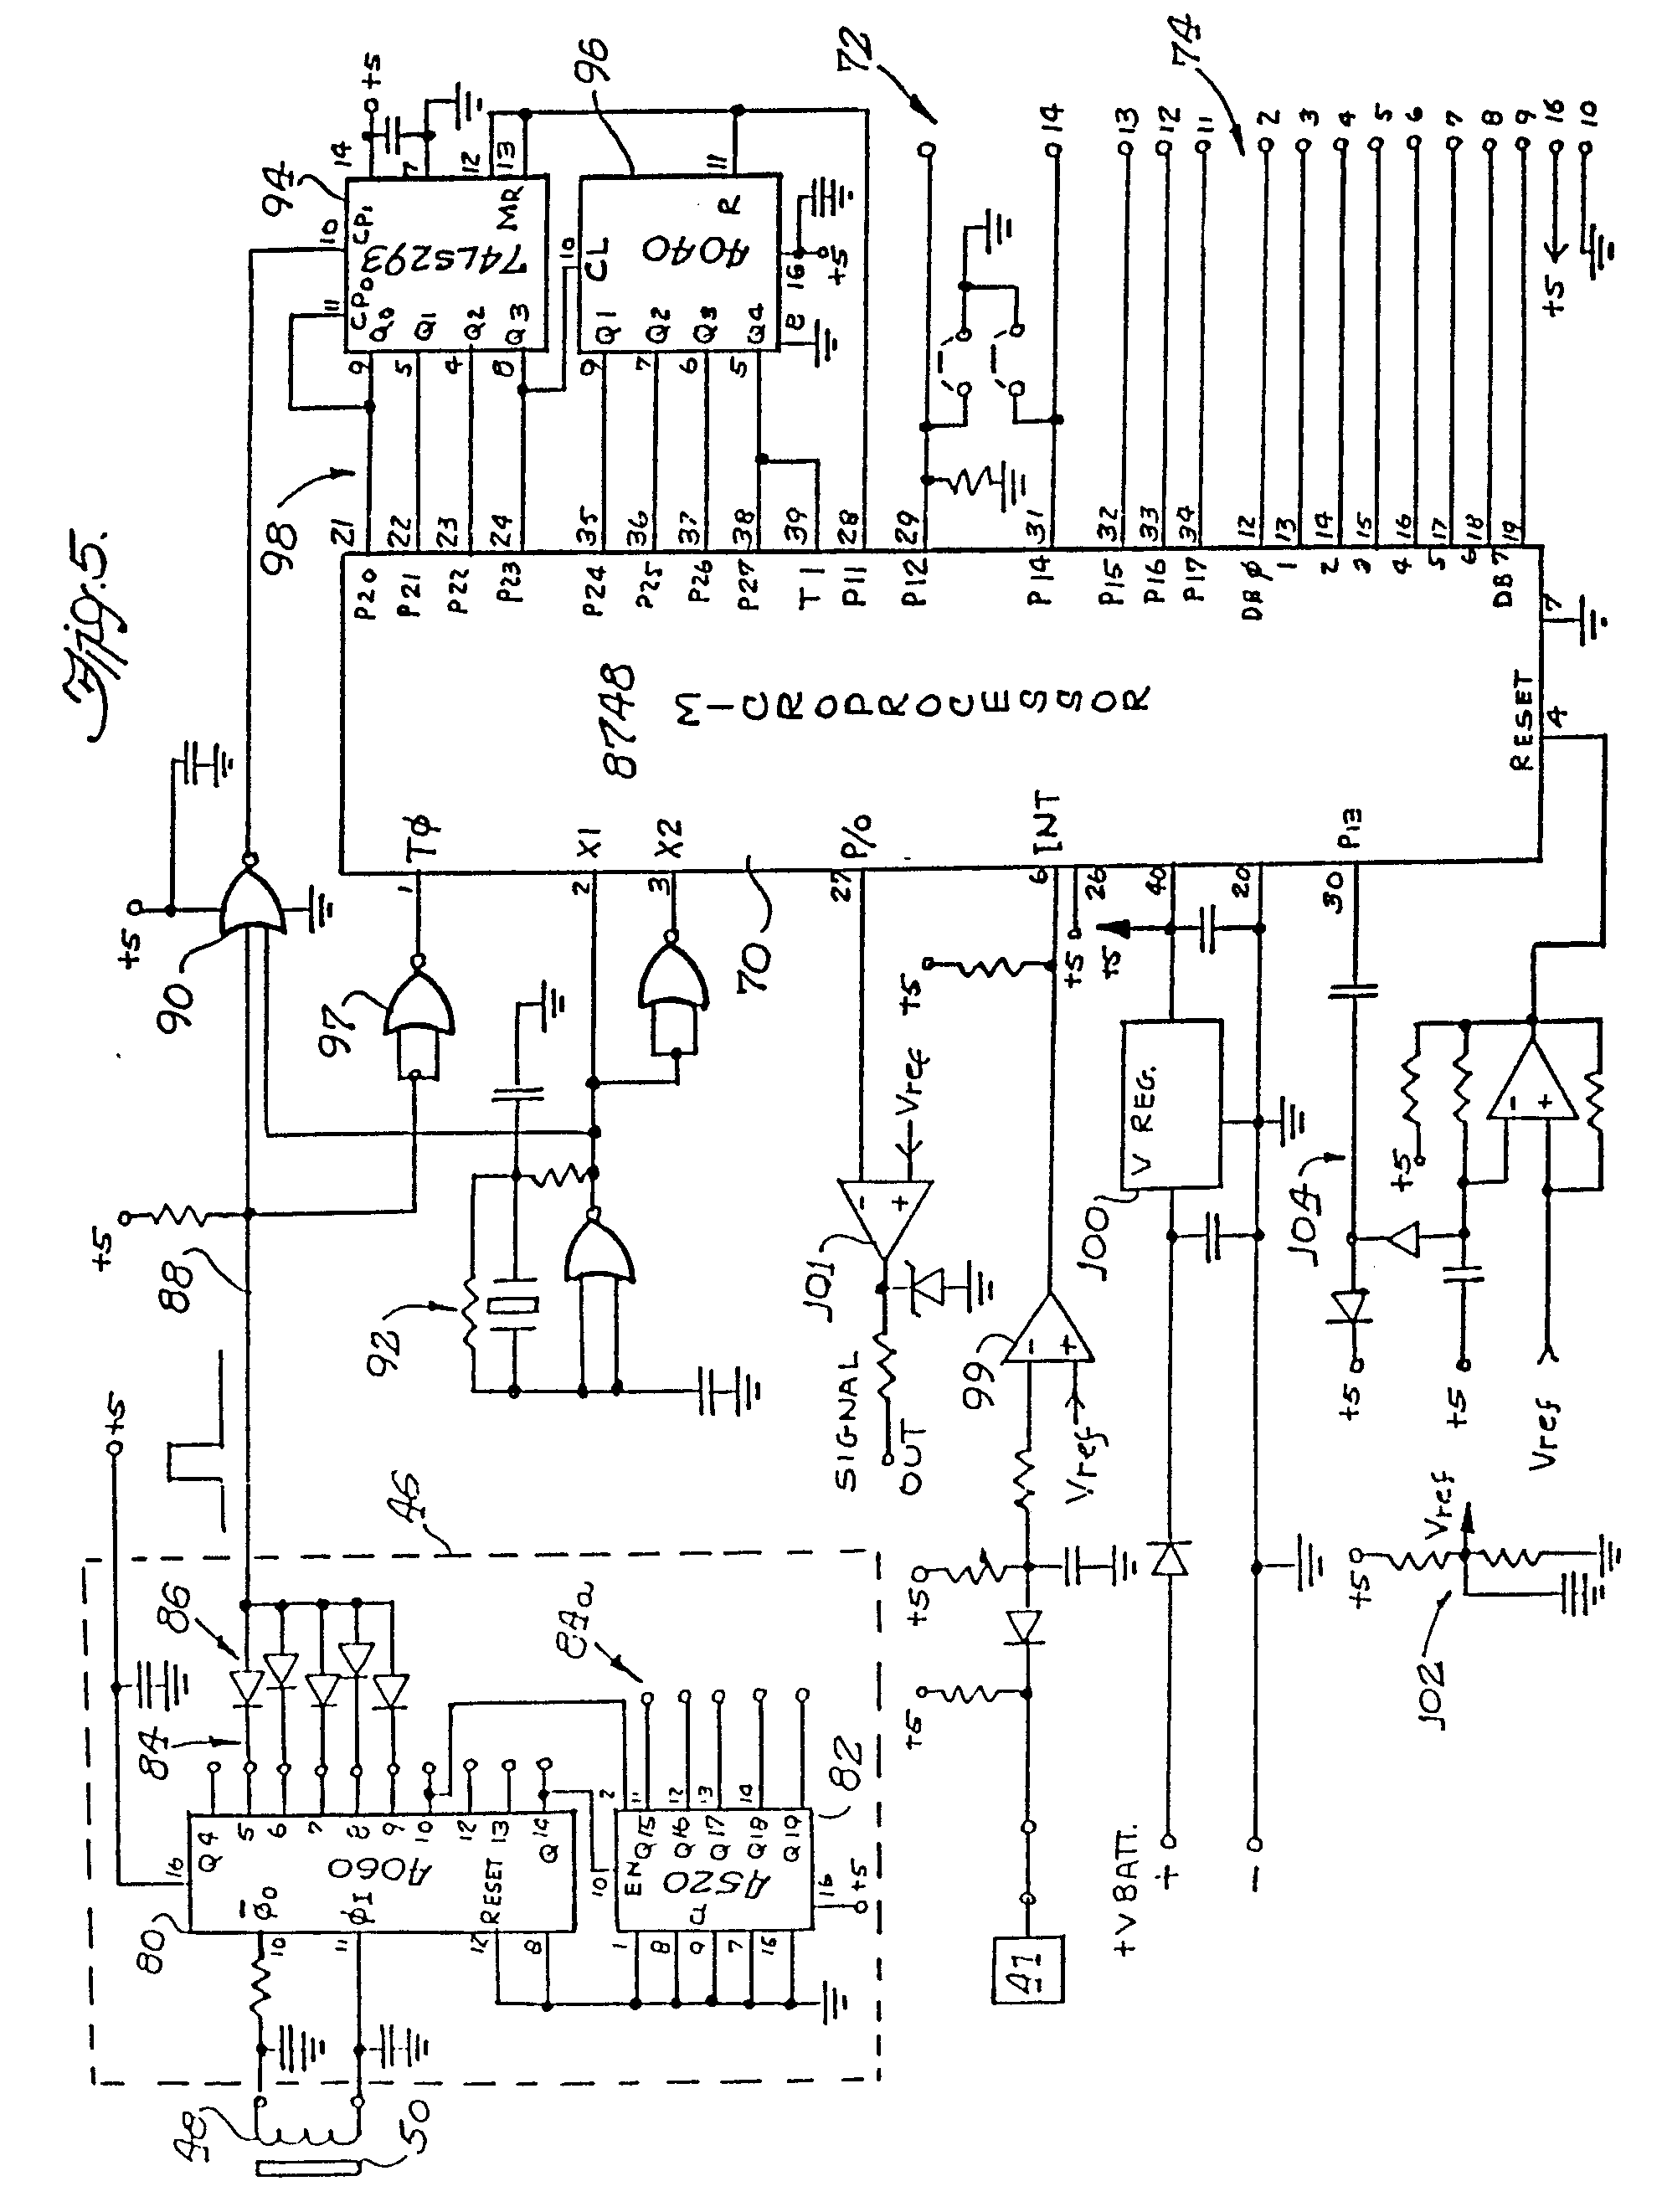 Farmall Cub Wiring Diagram 354252r92